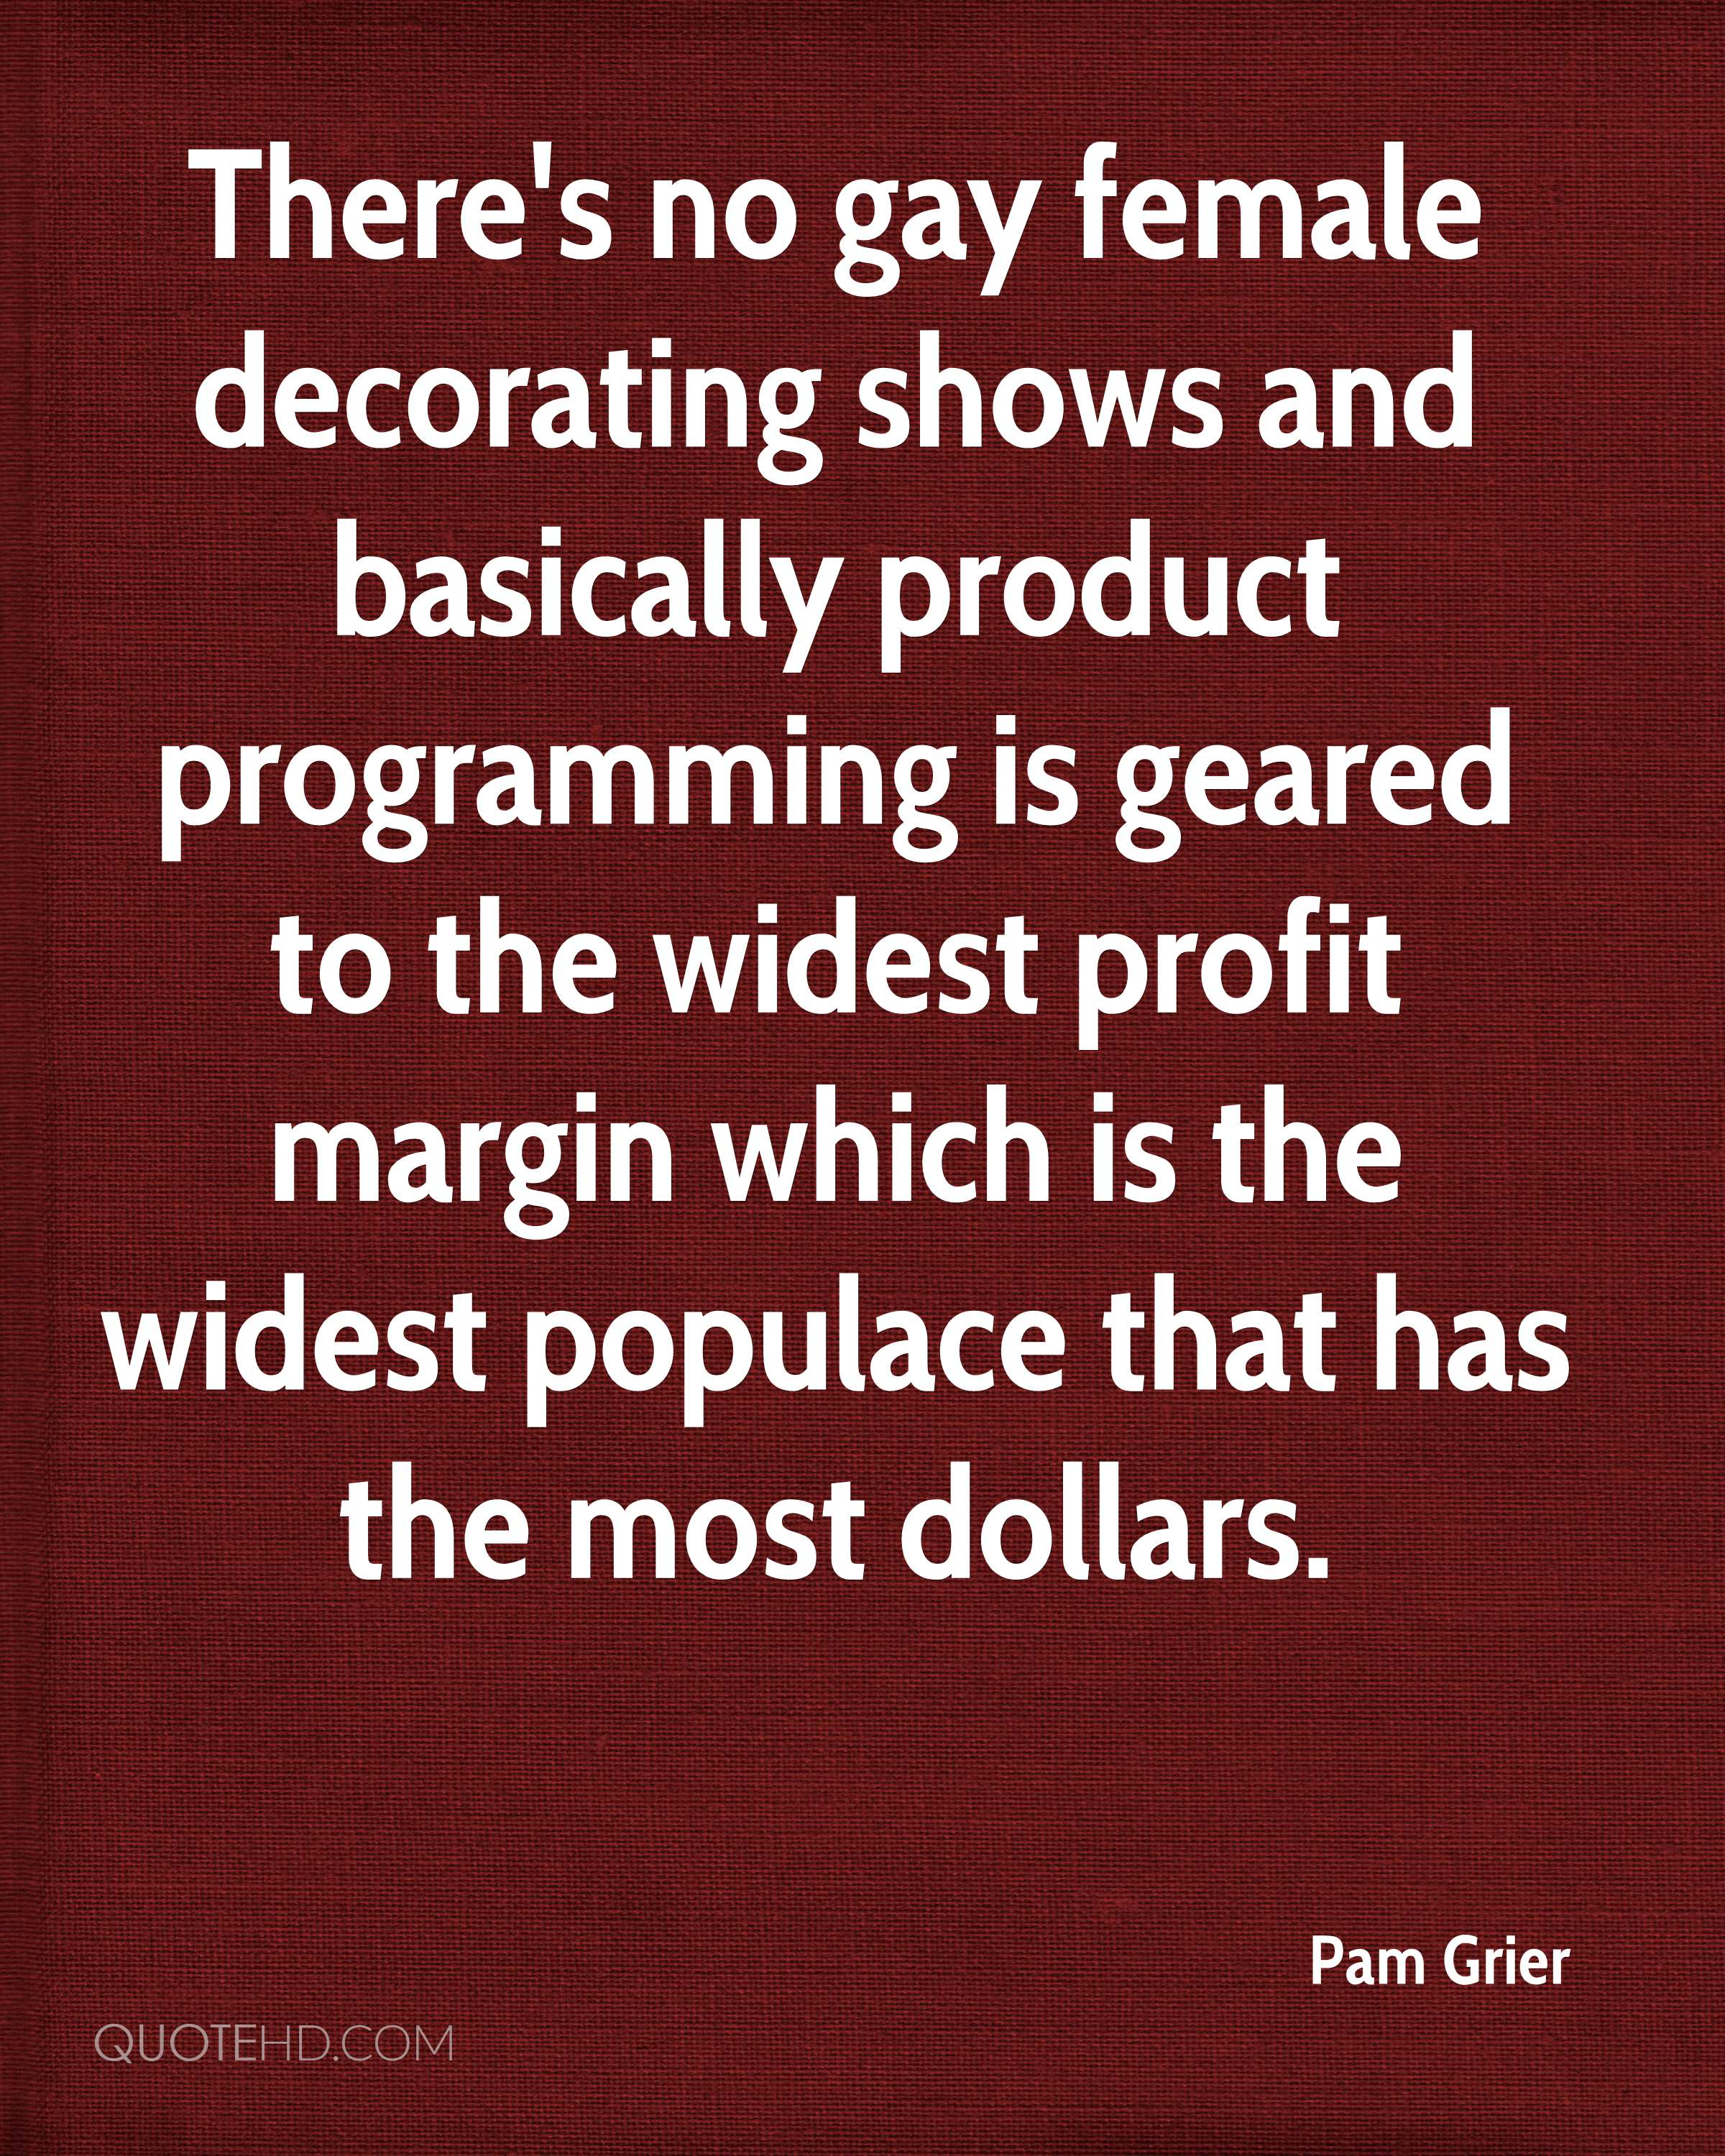 There's no gay female decorating shows and basically product programming is geared to the widest profit margin which is the widest populace that has the most dollars.